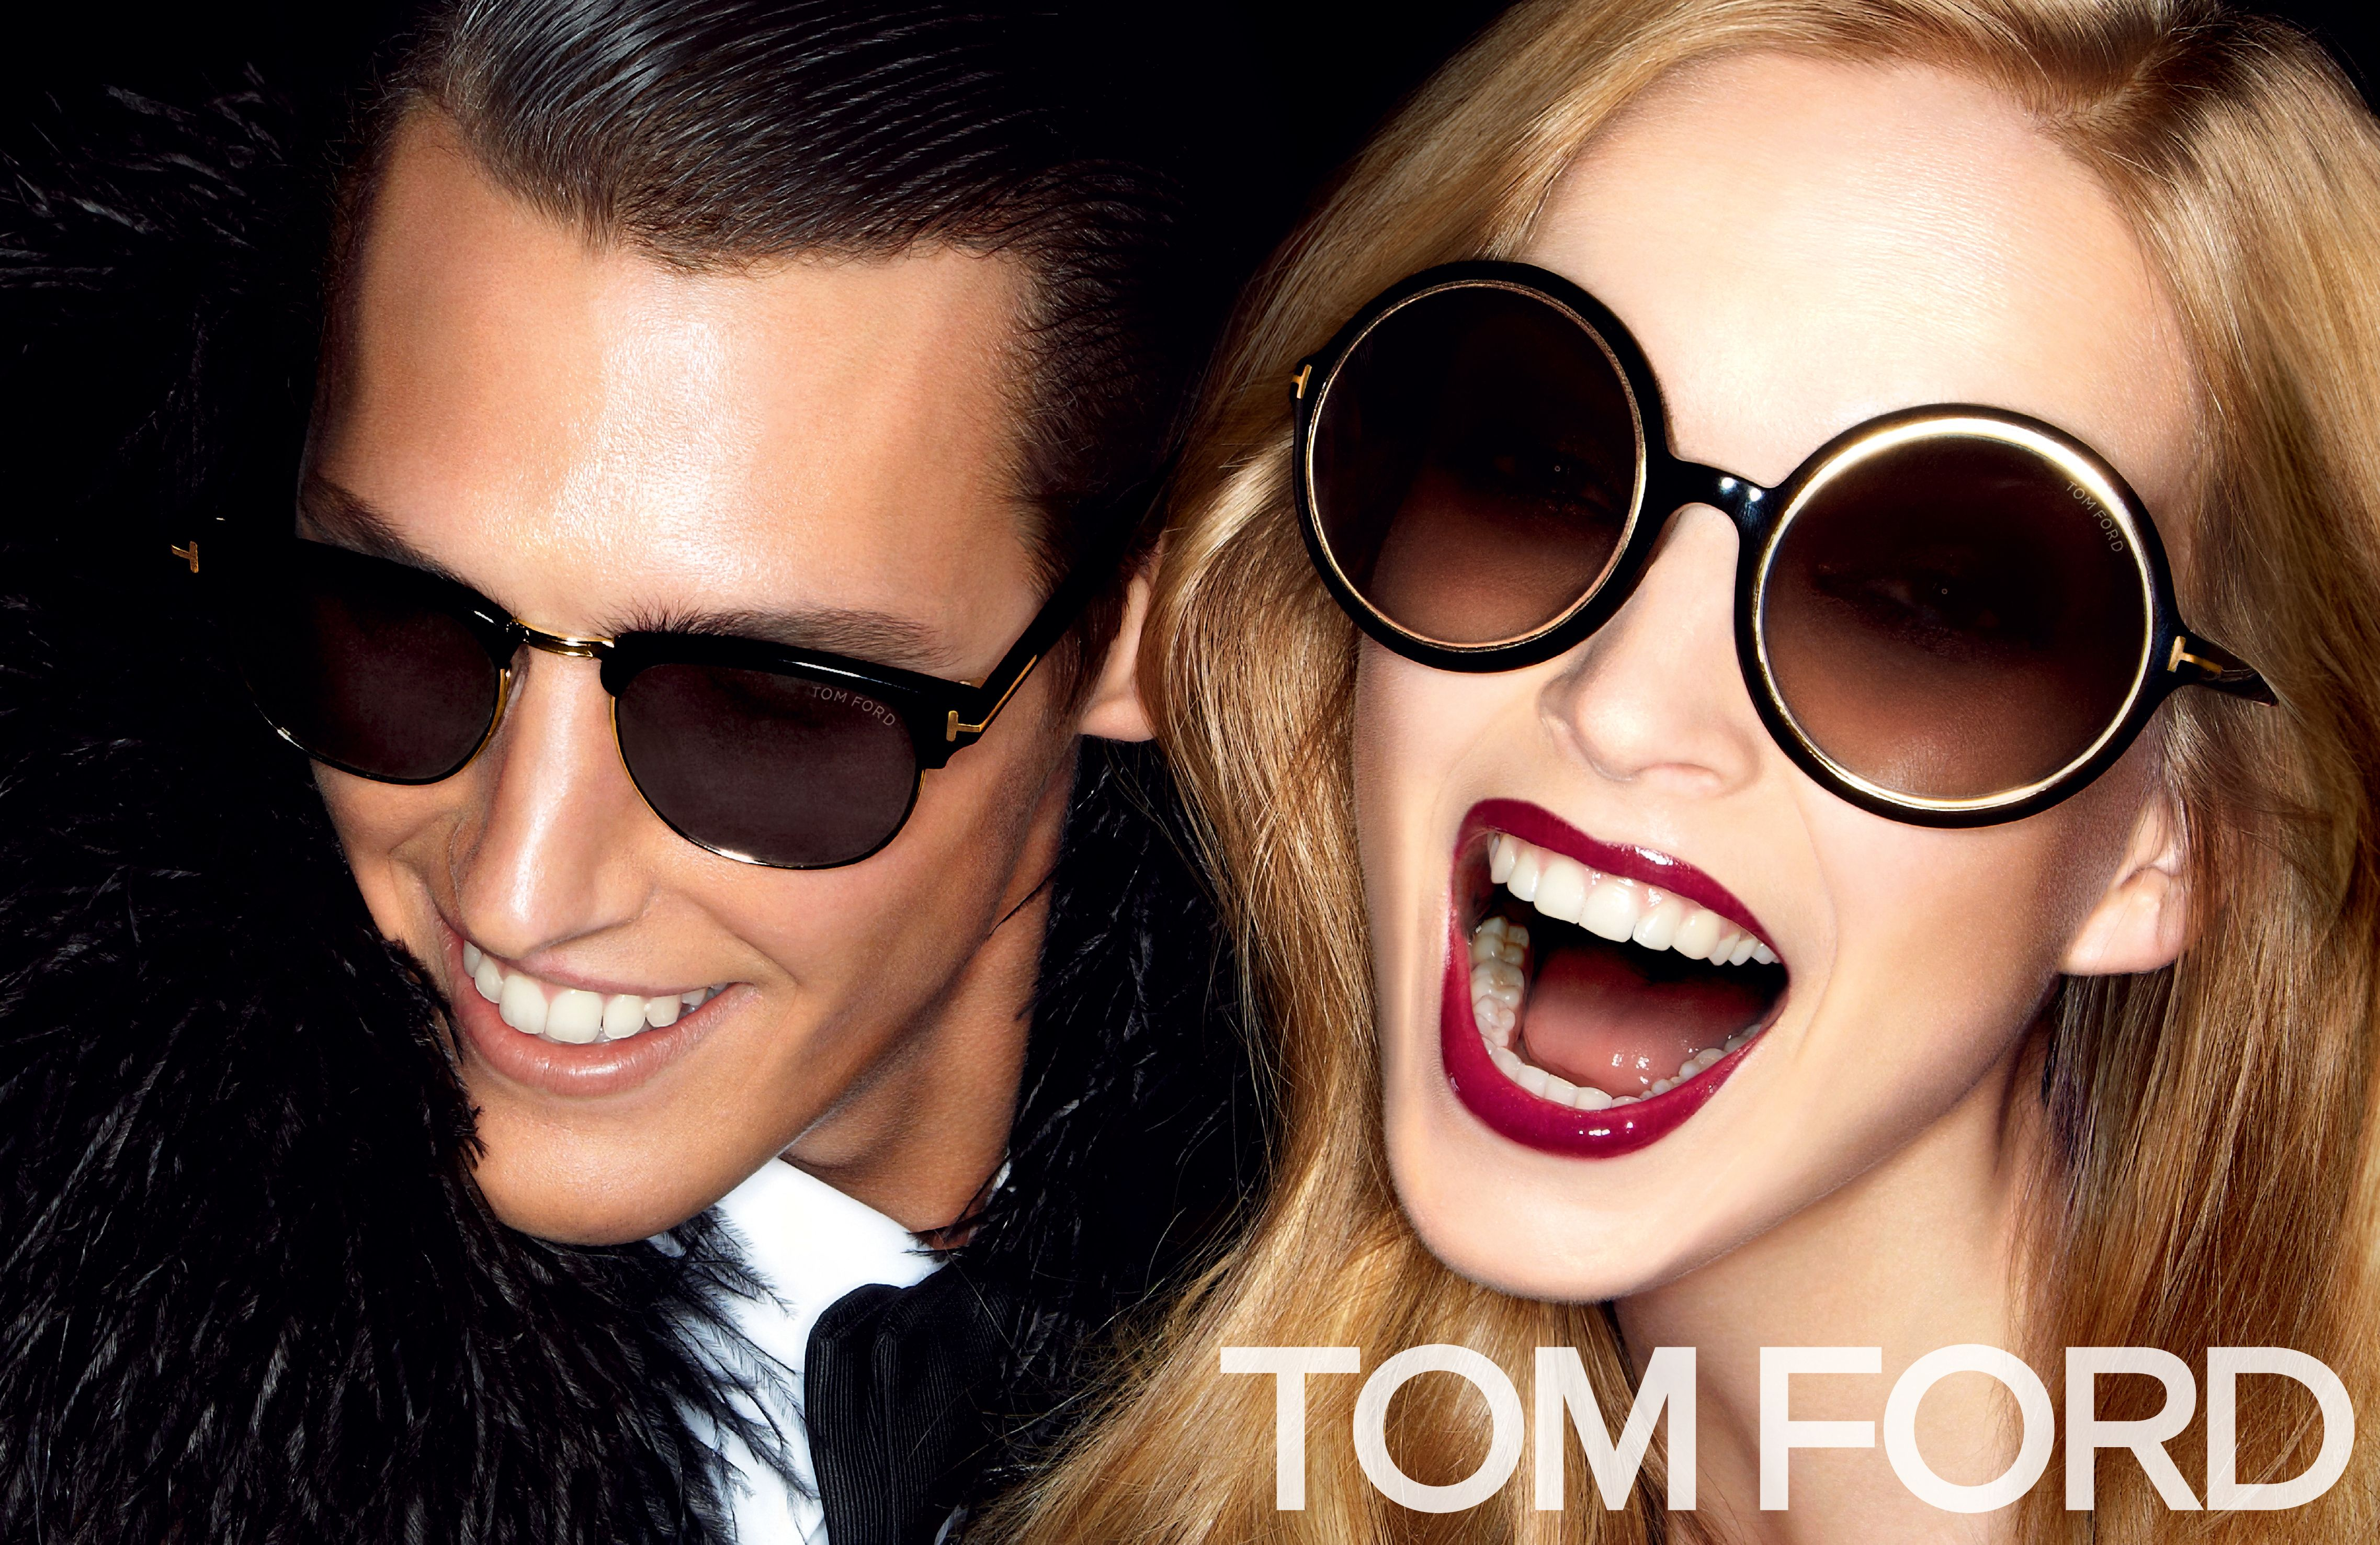 012a005898 Join us for our Tom Ford trunk show on December 11th from 12-5pm. 20% off  of all complete eyeglass or sunglass frames!